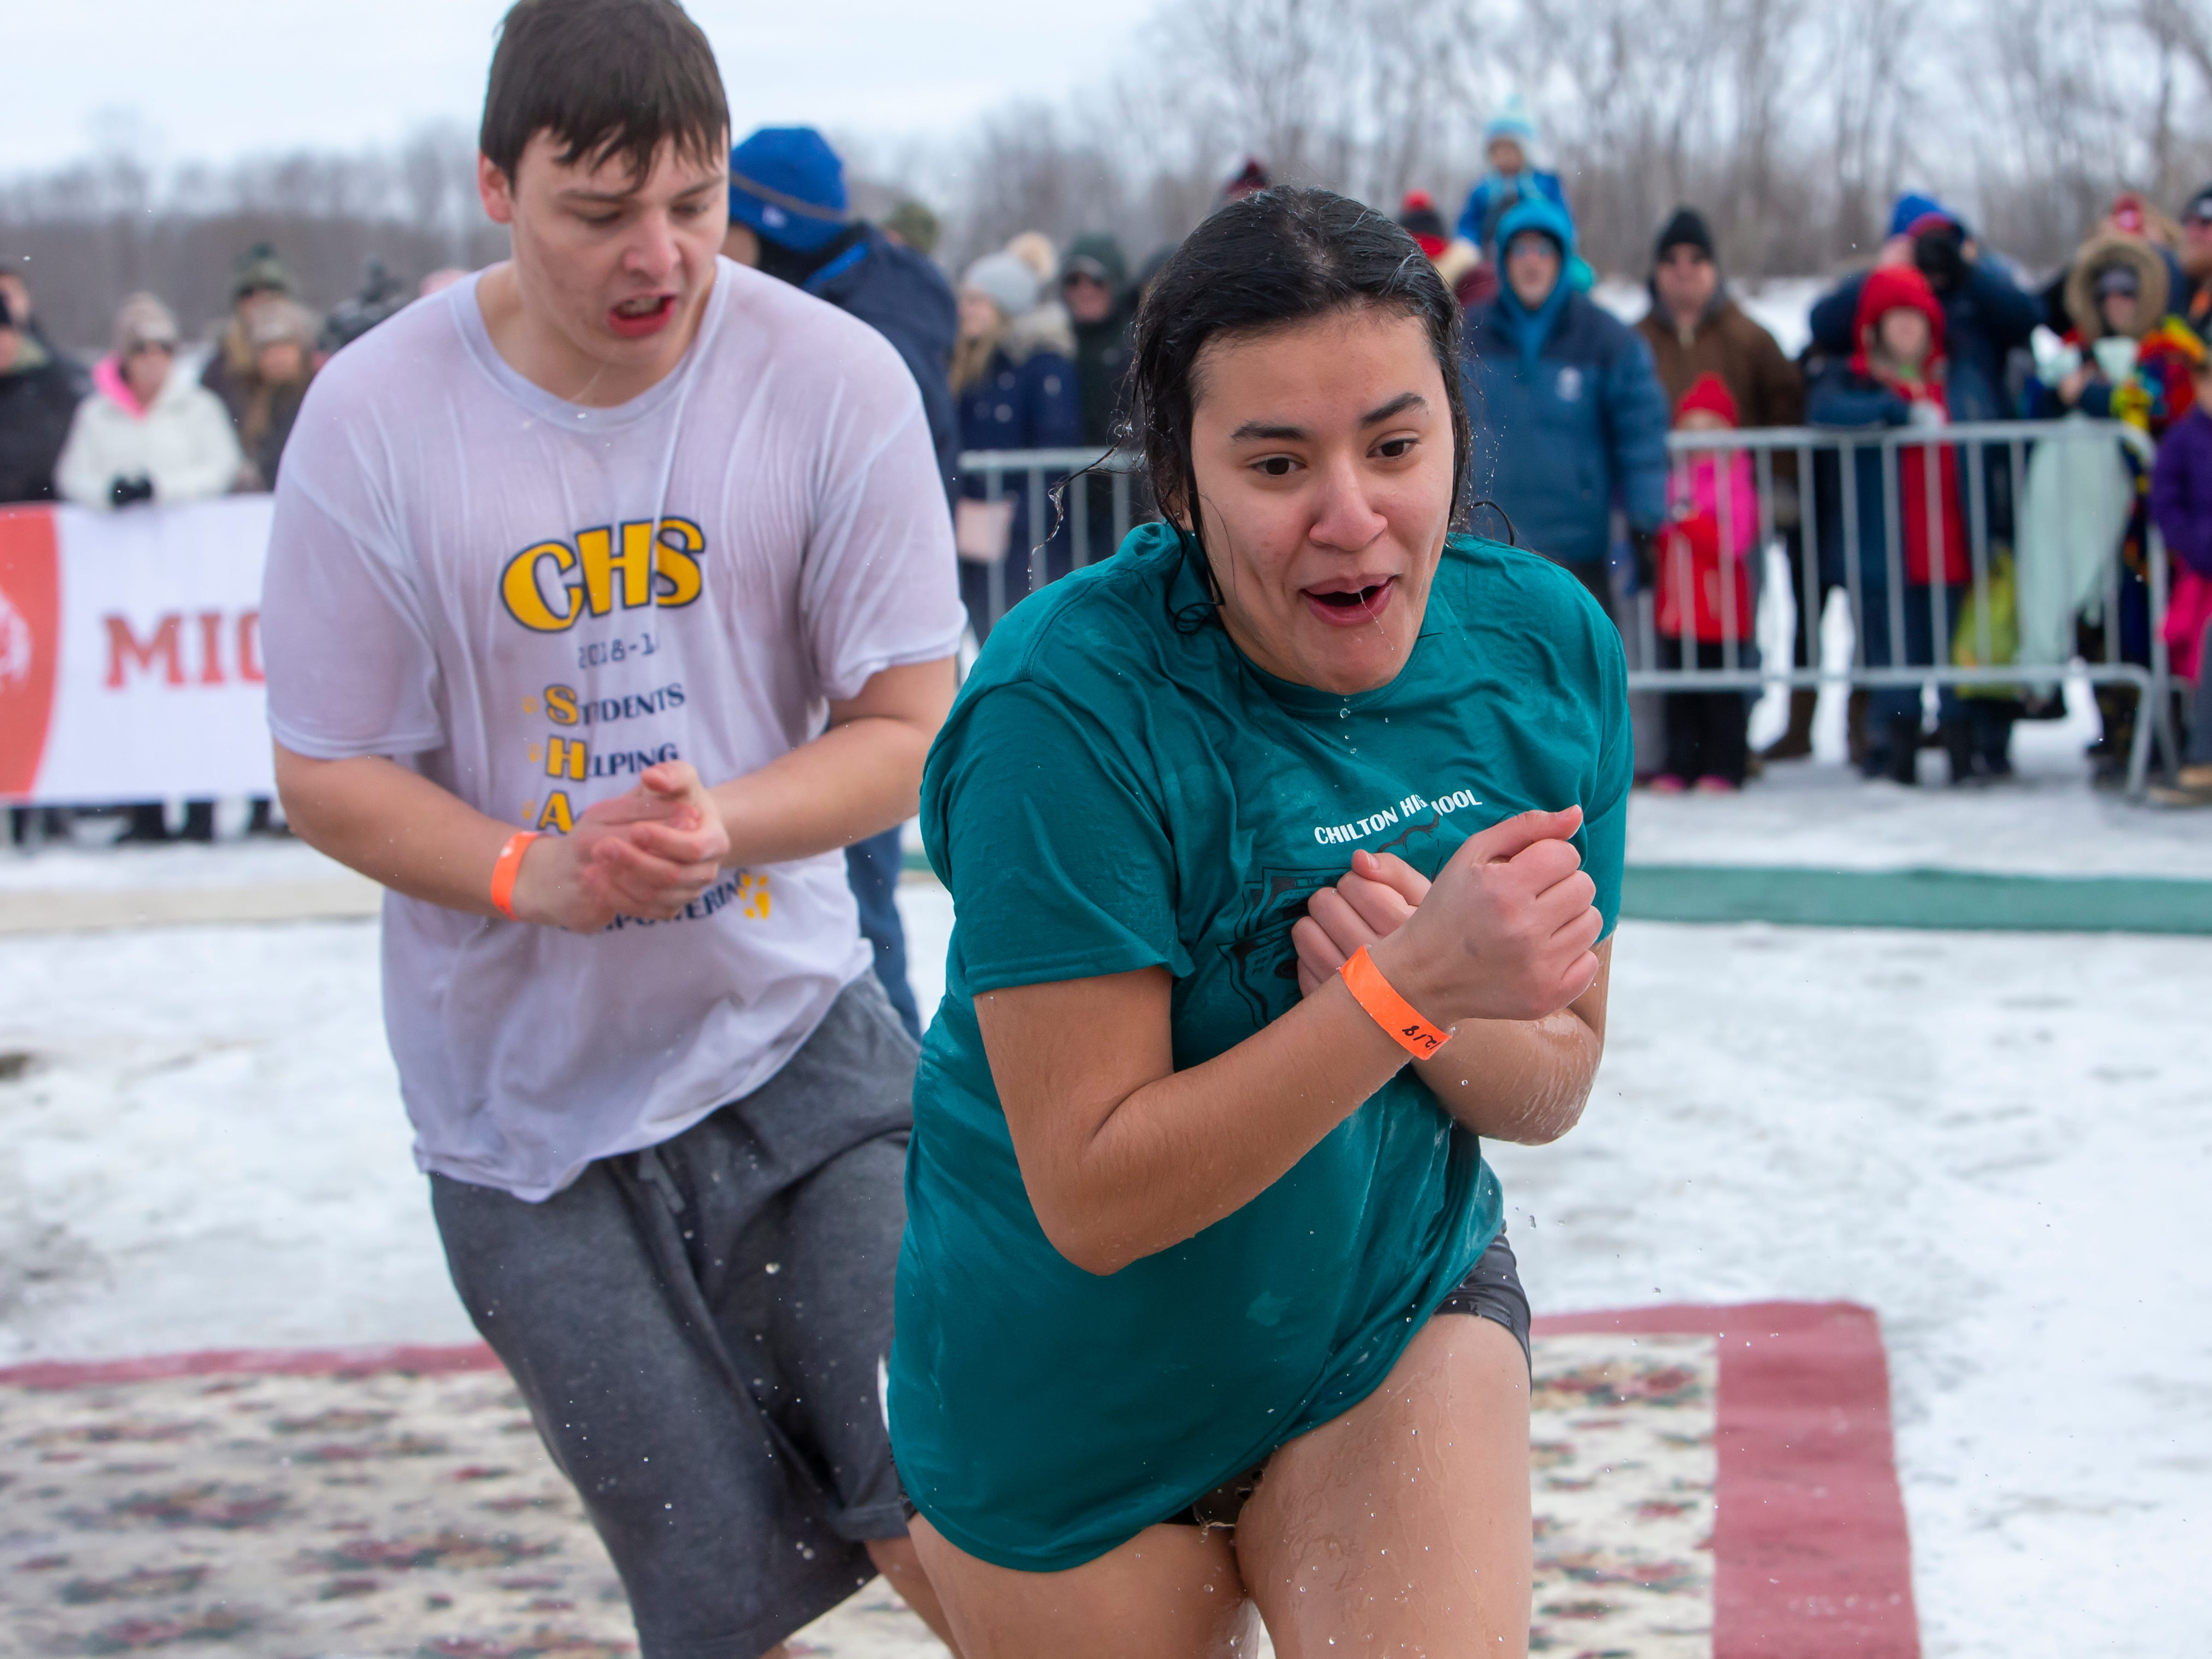 Chilton High School students react after coming out of the water during the Special Olympics Wisconsin Polar Plunge in Oshkosh, Wis., on Saturday, February 16, 2019, at Miller's Bay in Menominee Park.